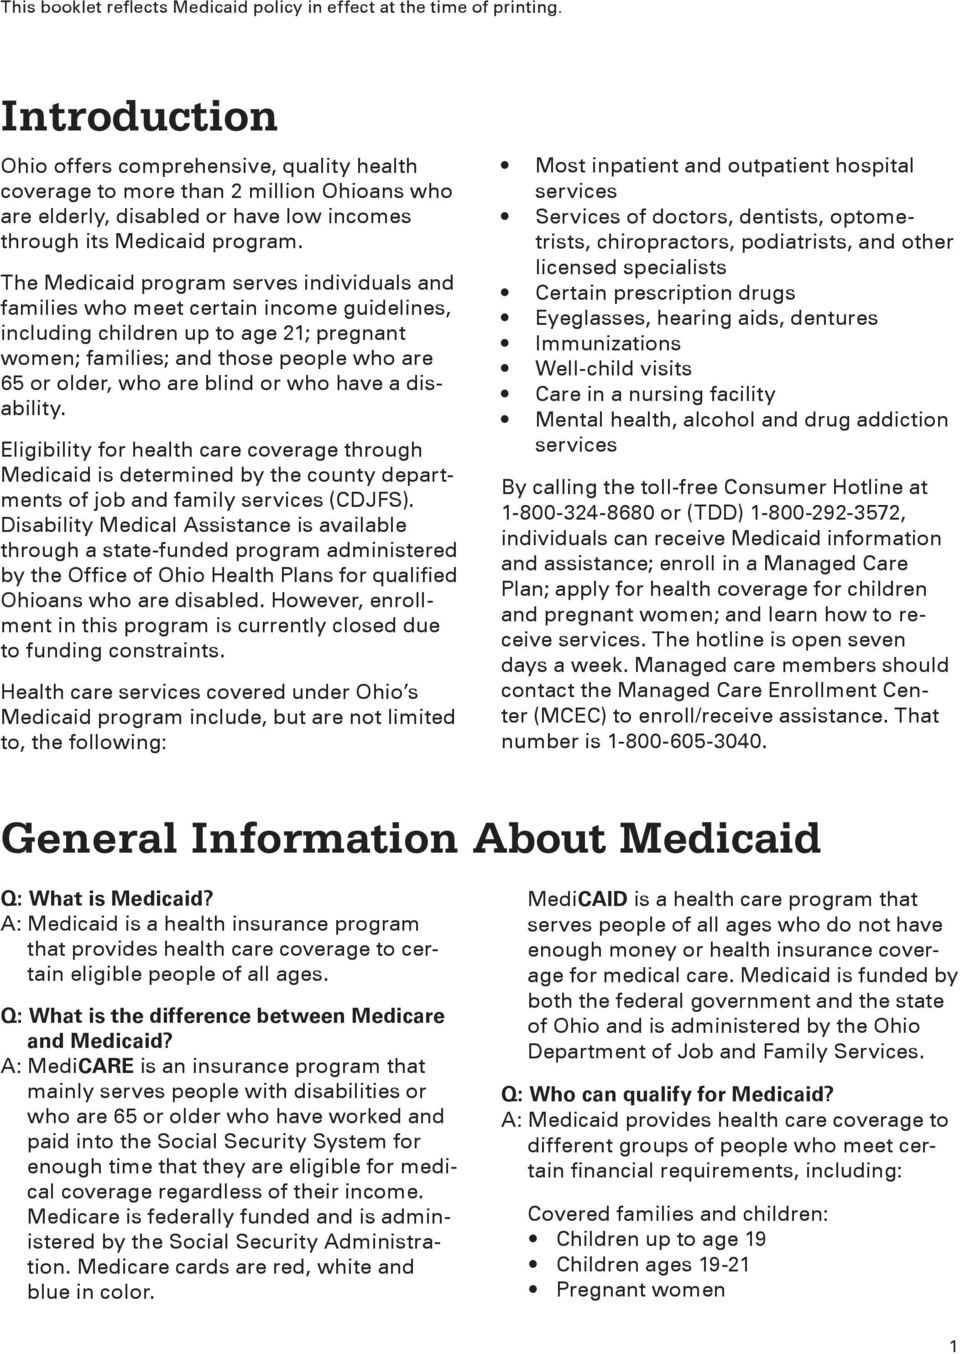 The Medicaid program serves individuals and families who meet certain income guidelines, including children up to age 21; pregnant women; families; and those people who are 65 or older, who are blind